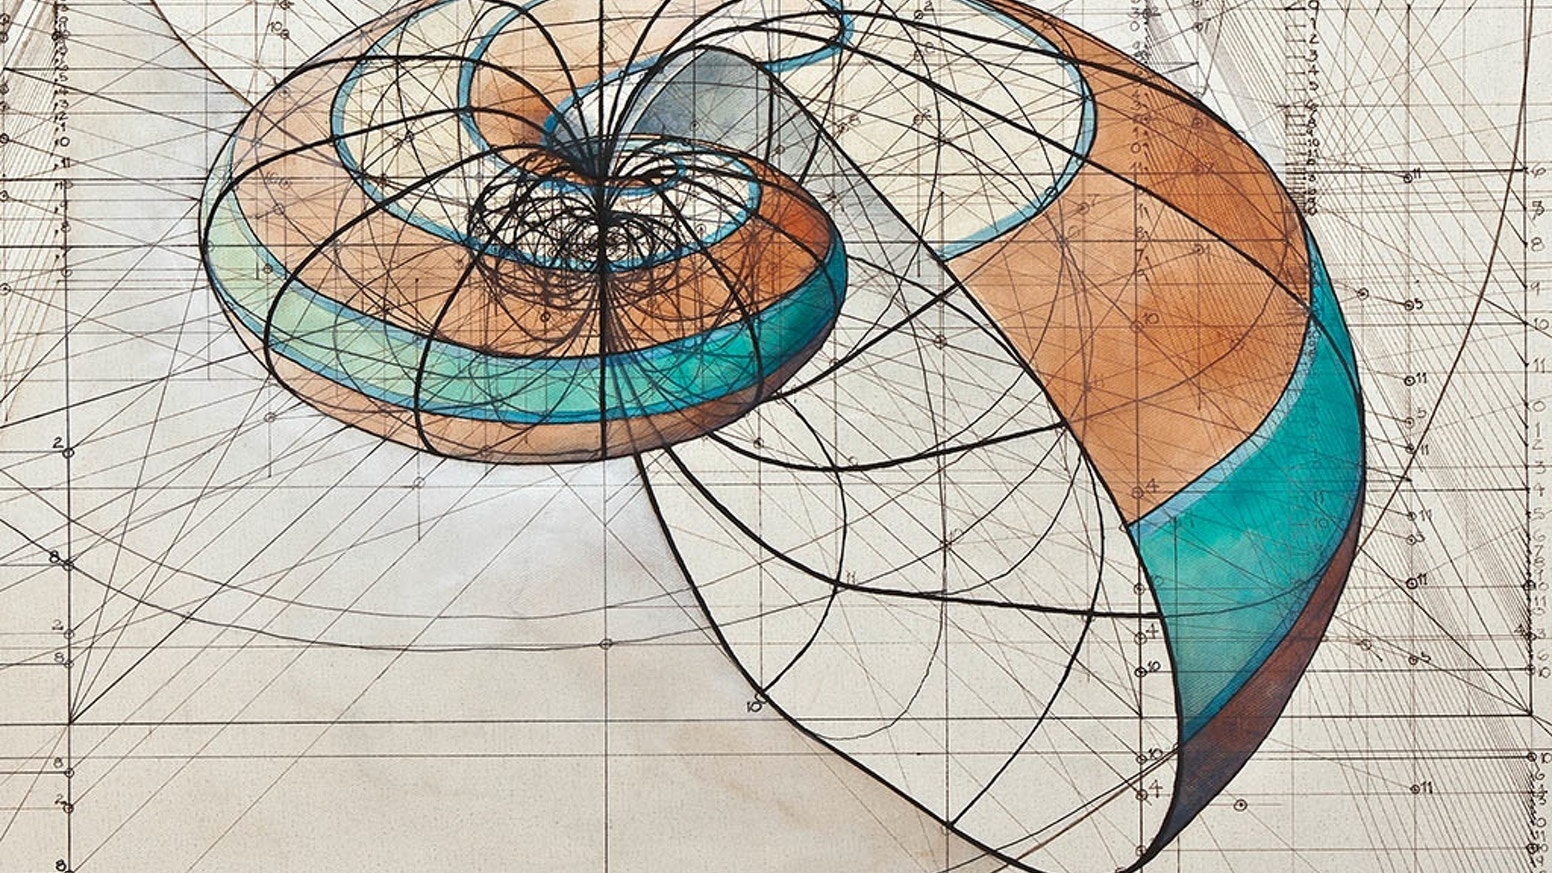 Golden ratio coloring book by rafael araujo kickstarter a coloring book with a collection of rafael araujos hand drawn golden ratio illustrations to reconnect publicscrutiny Images